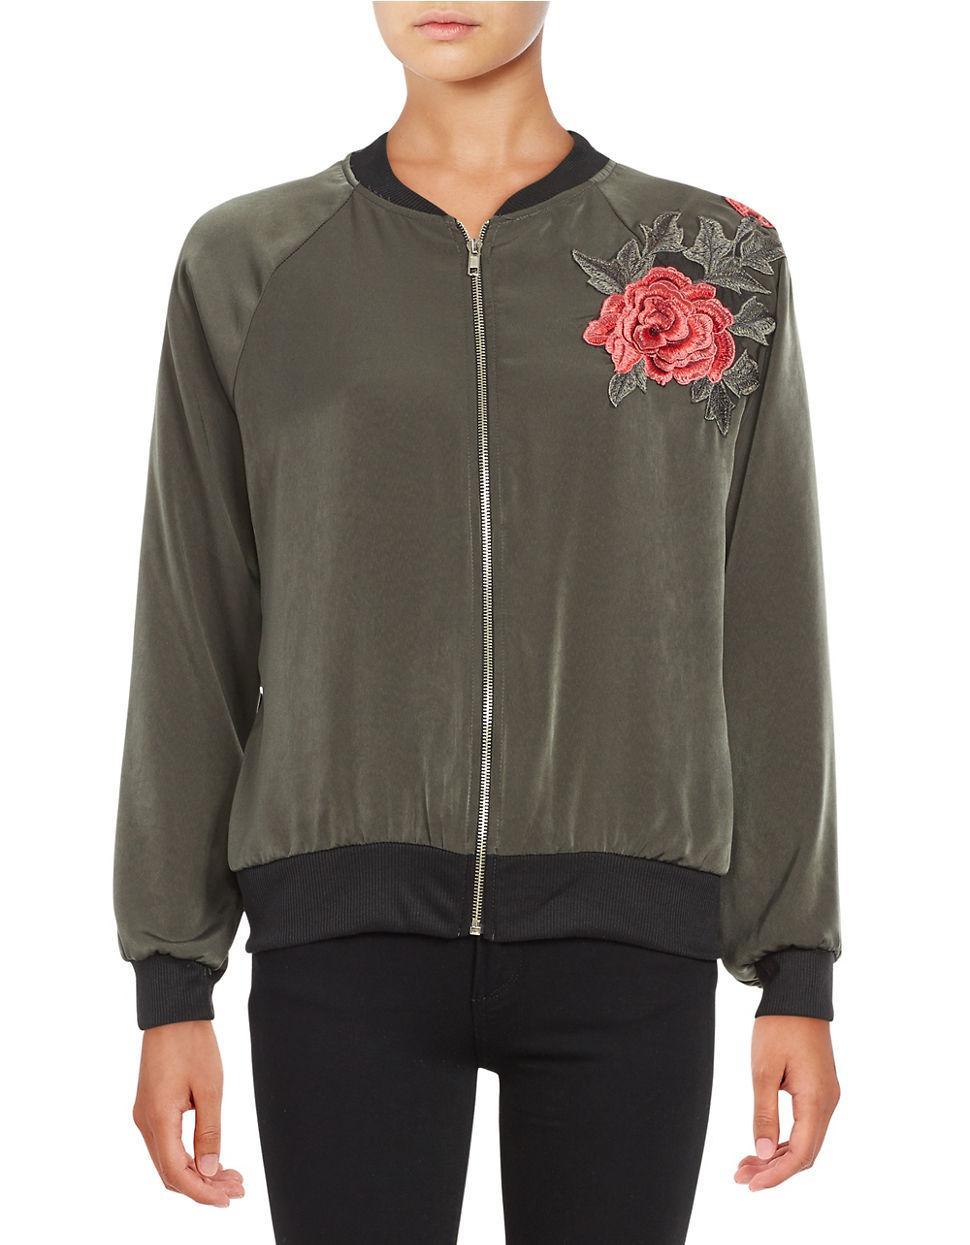 Lord taylor floral embroidered bomber jacket in green lyst